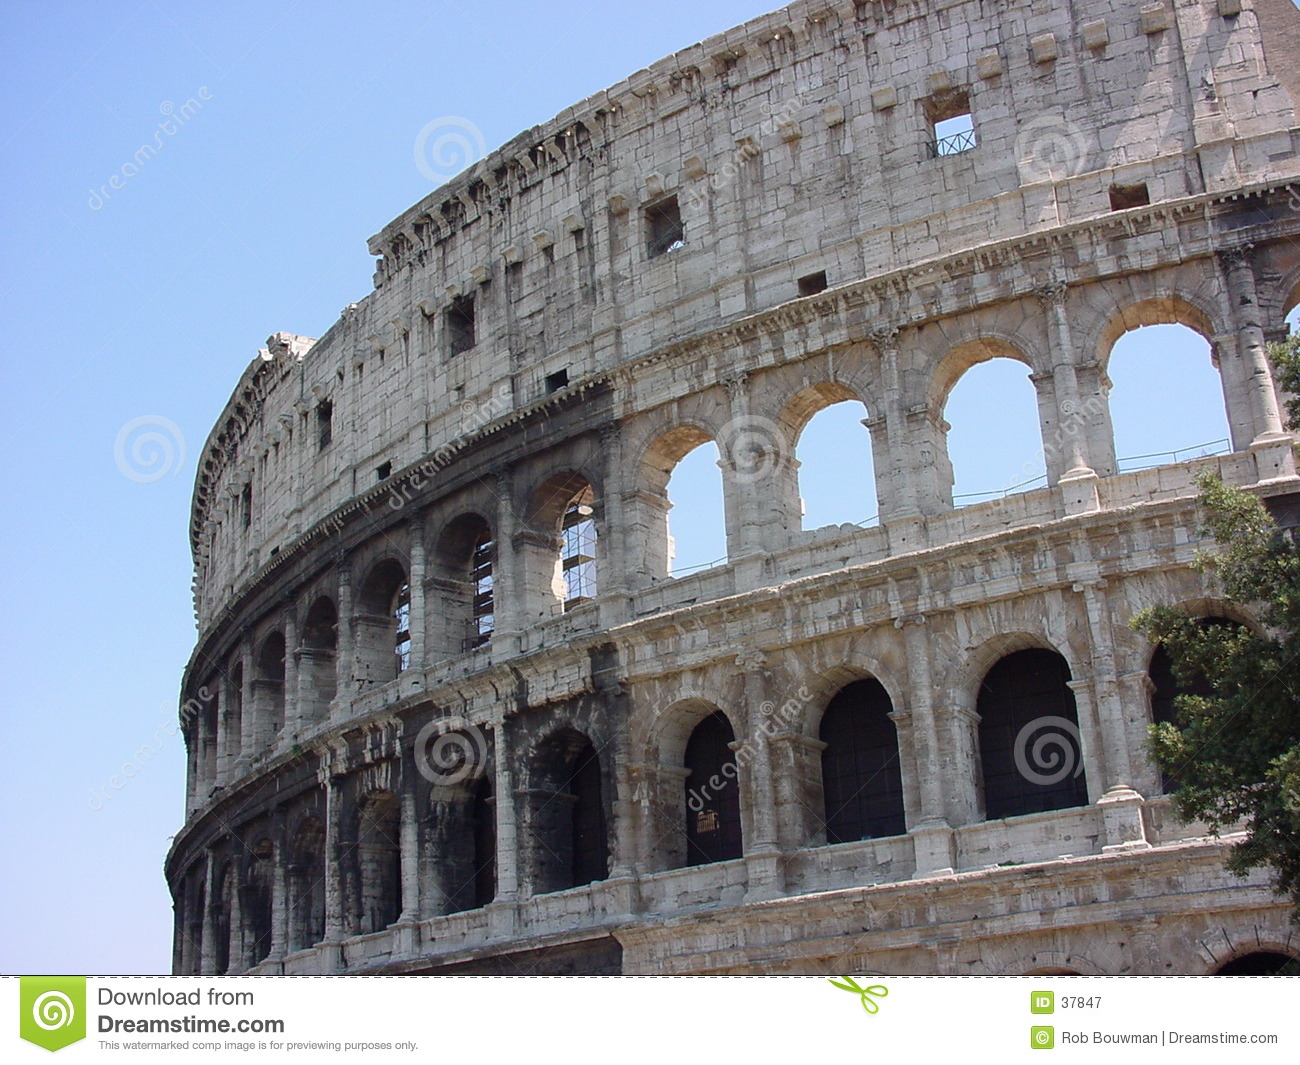 Download Colosseum Rom stockbild. Bild von reise, italien, europa - 37847